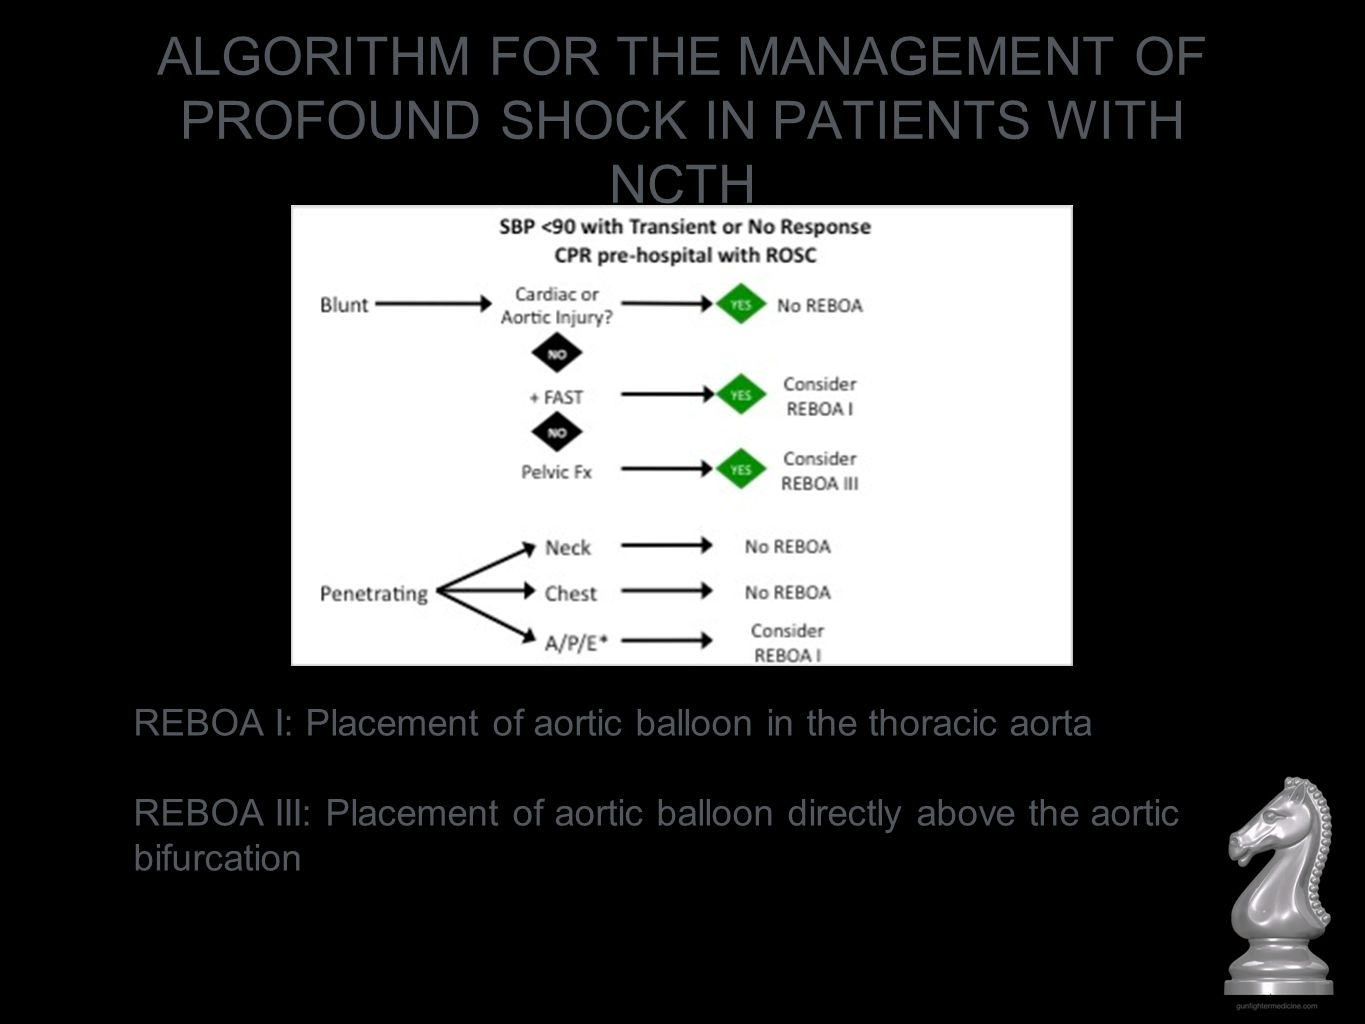 ALGORITHM FOR THE MANAGEMENT OF PROFOUND SHOCK IN PATIENTS WITH NCTH